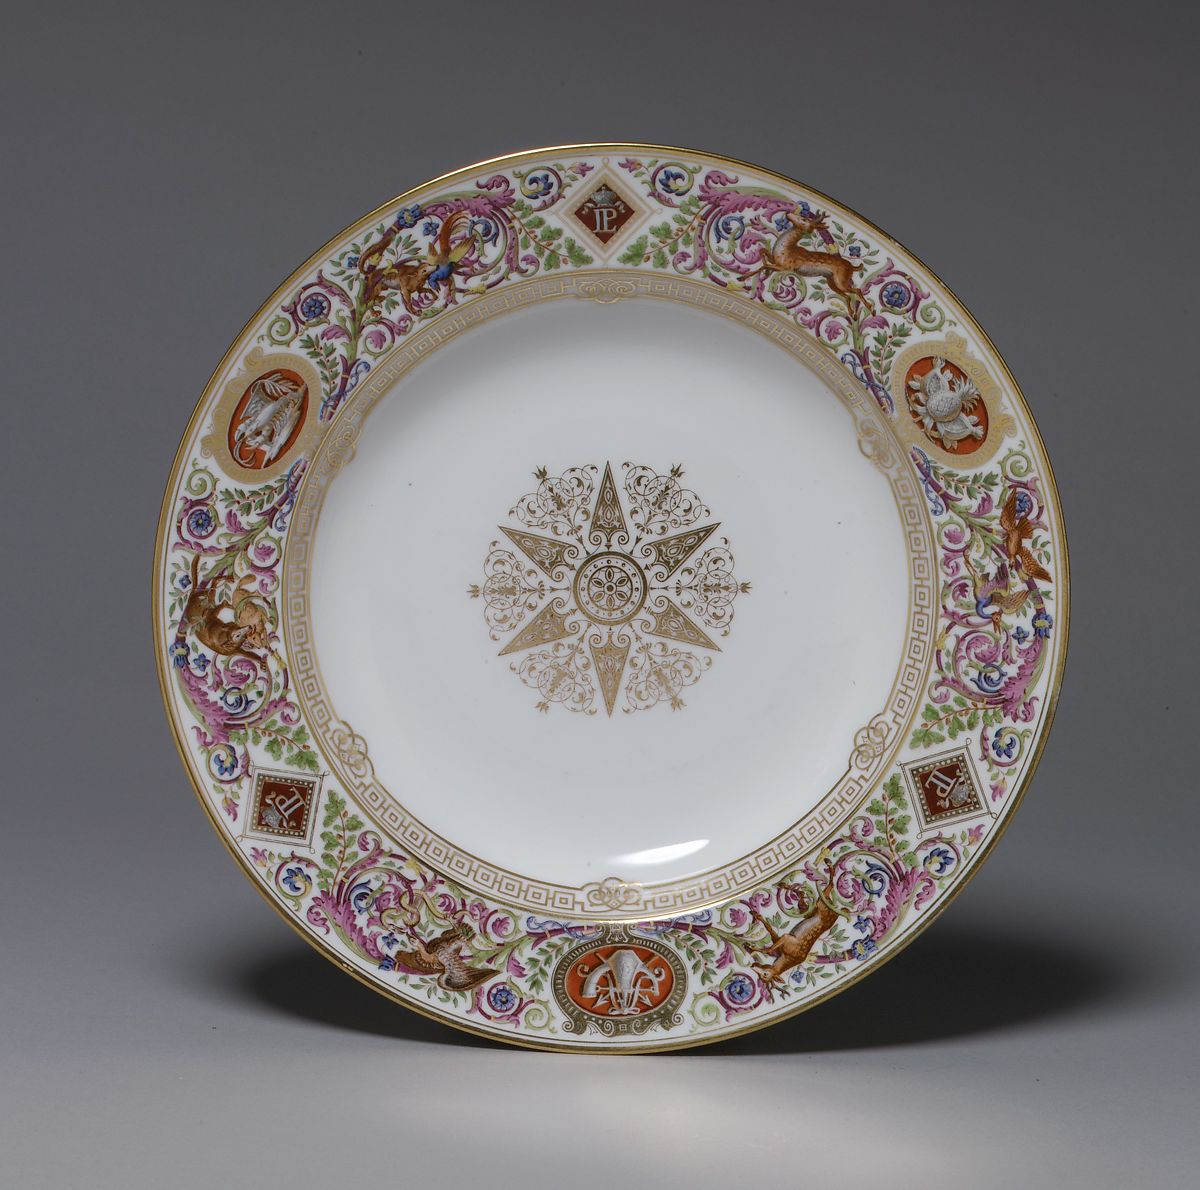 Sèvres Porcelain in the Nineteenth Century Essay The Metr